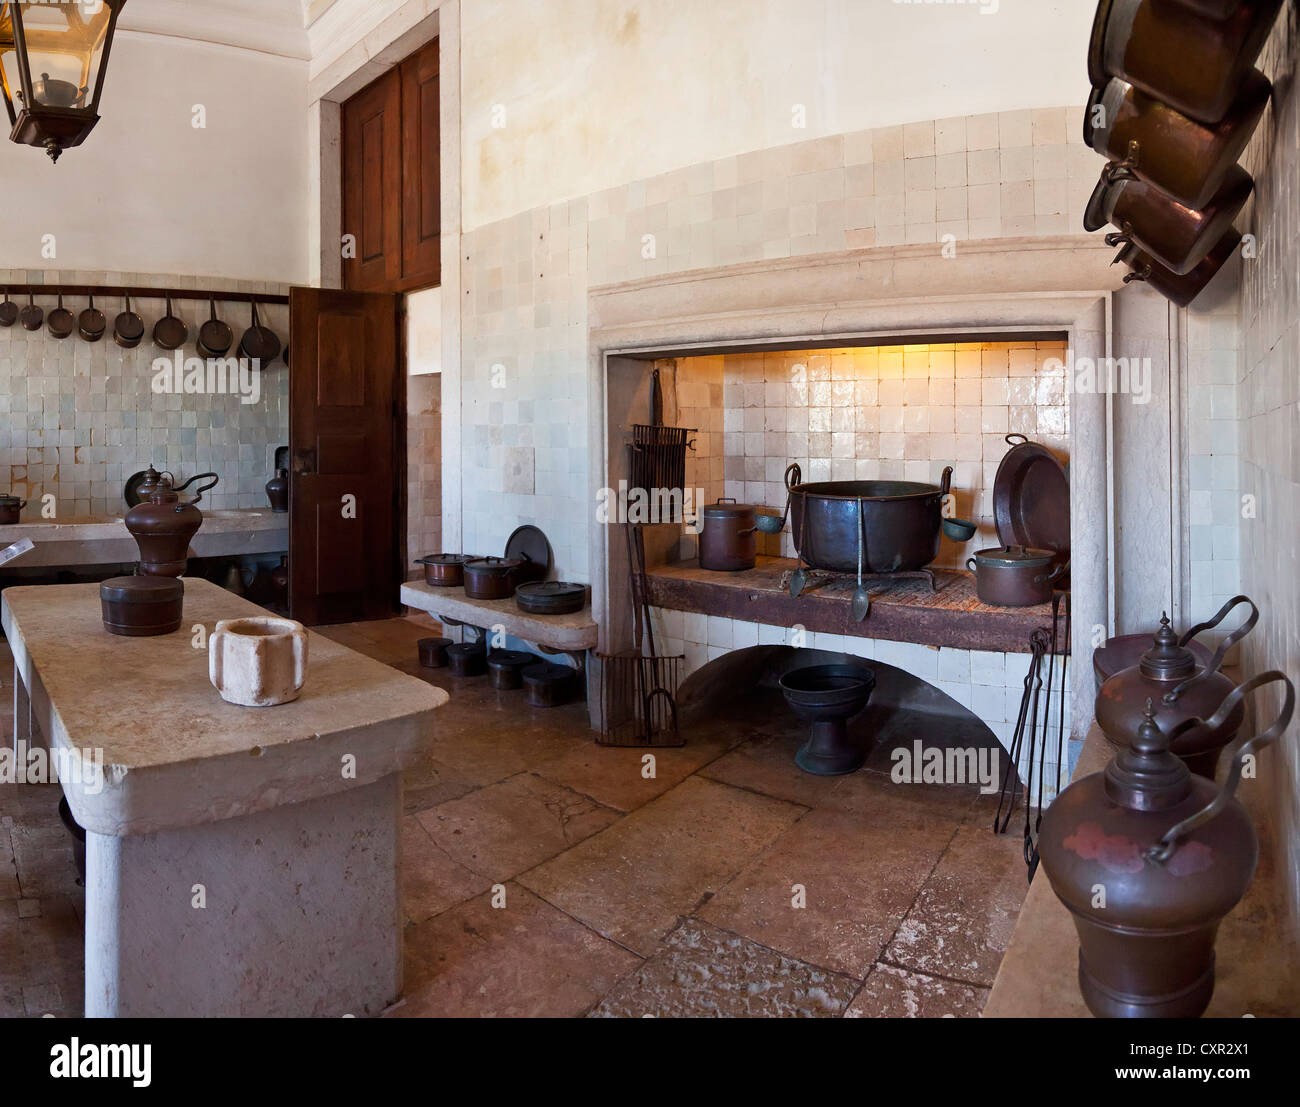 Infirmary Kitchen. Mafra National Palace, Convent and Basilica in Portugal. Franciscan Religious Order. Baroque - Stock Image